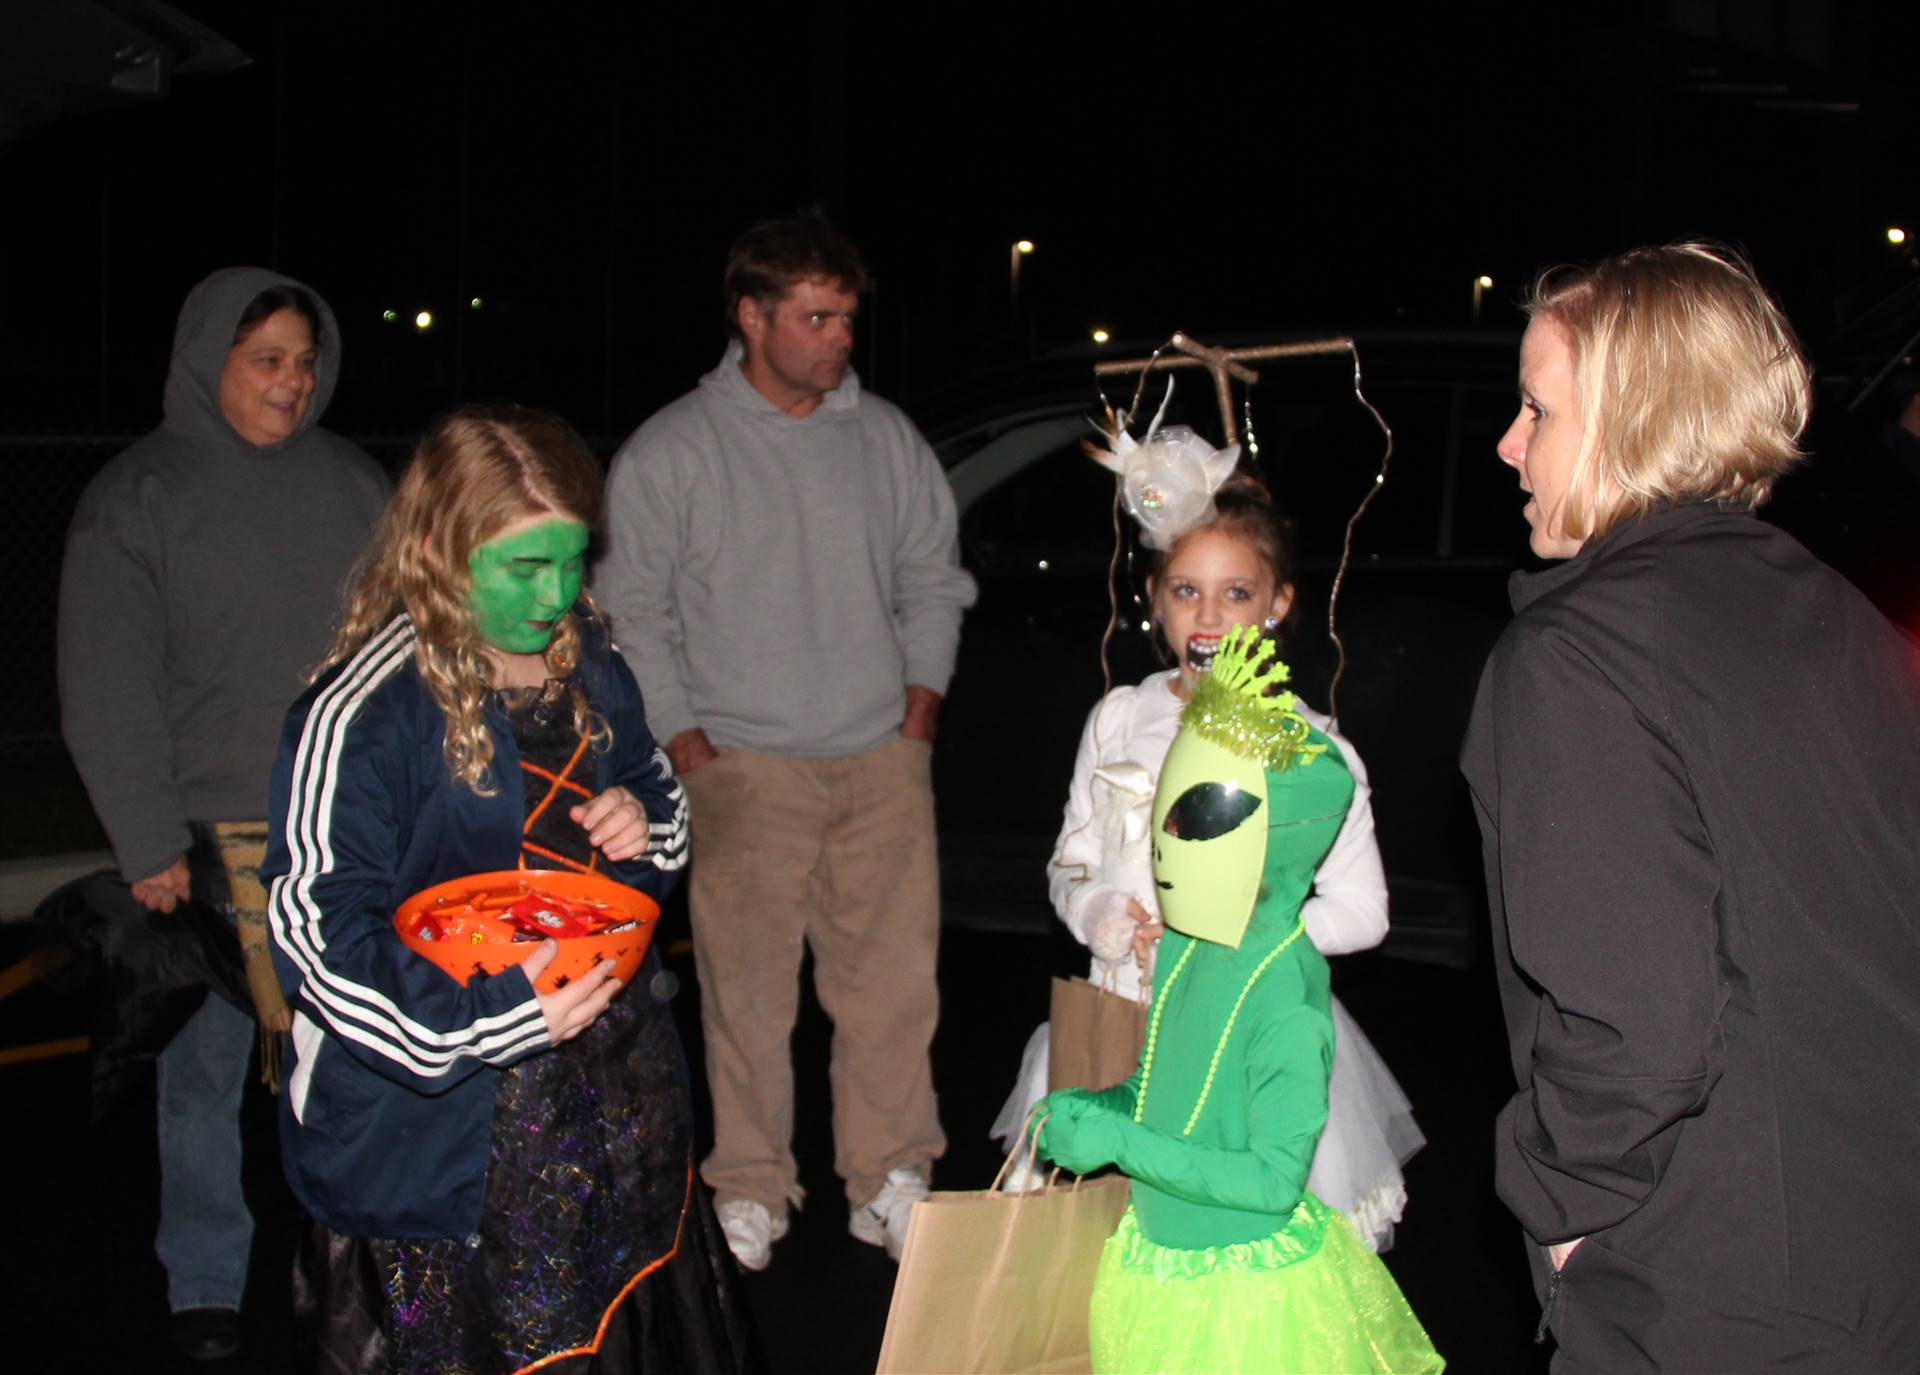 students getting candy at trunk or treat event